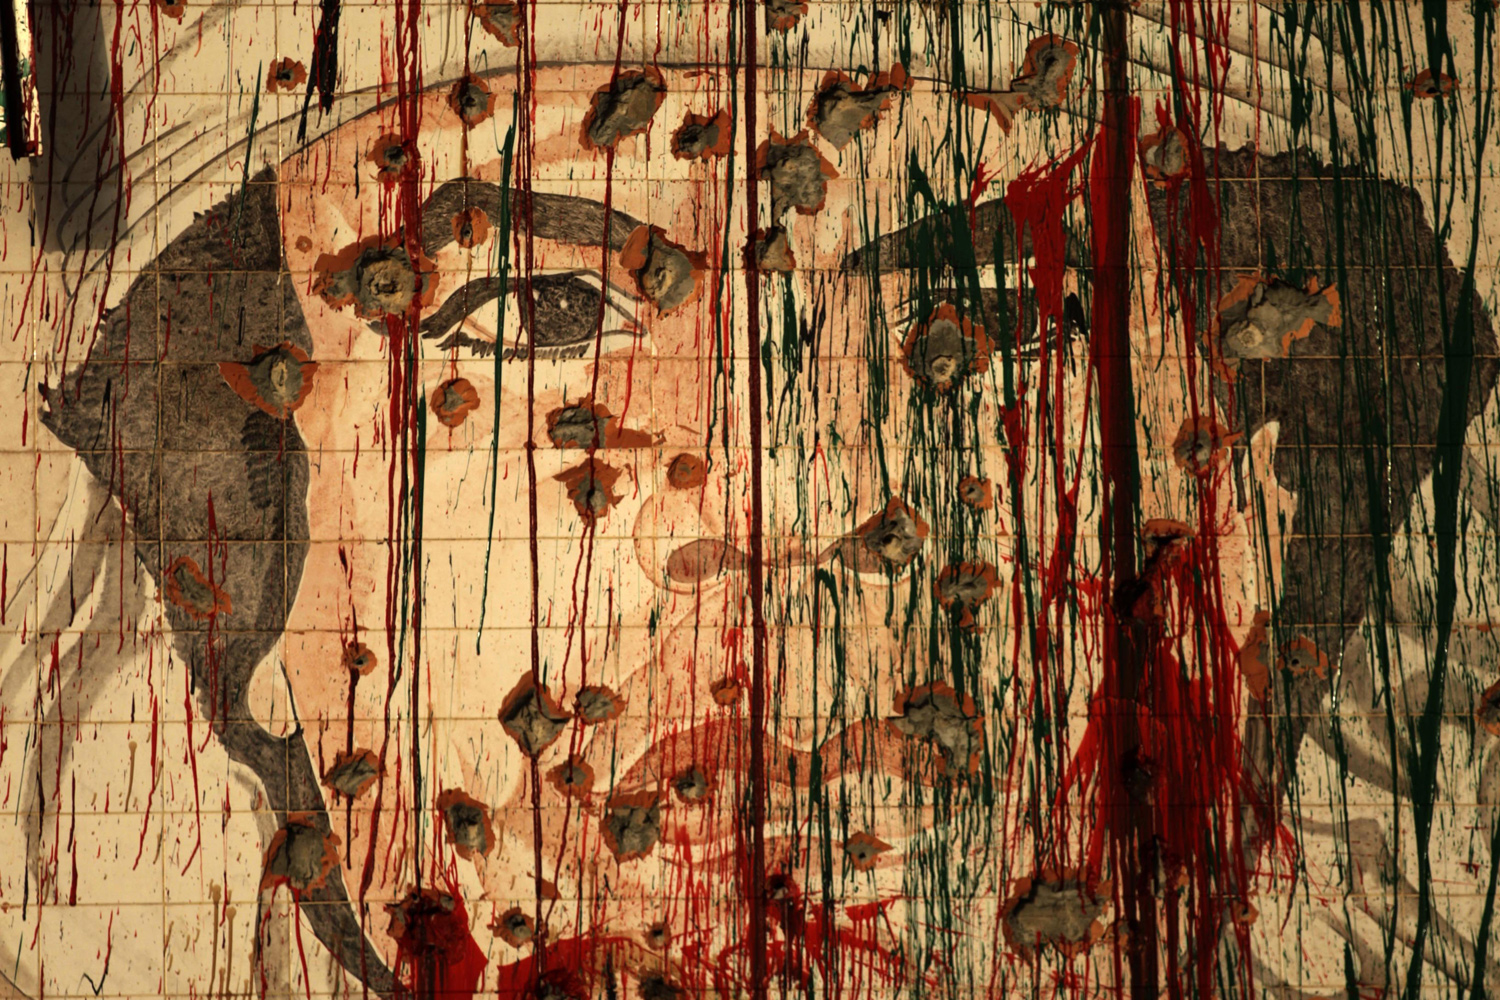 September 1, 2011. A defaced portrait of Libyan leader Muammar Gaddafi is pictured in Tripoli as the fallen strongman vowed again not to surrender, in a message broadcast on the 42nd anniversary of the coup which brought him to power.